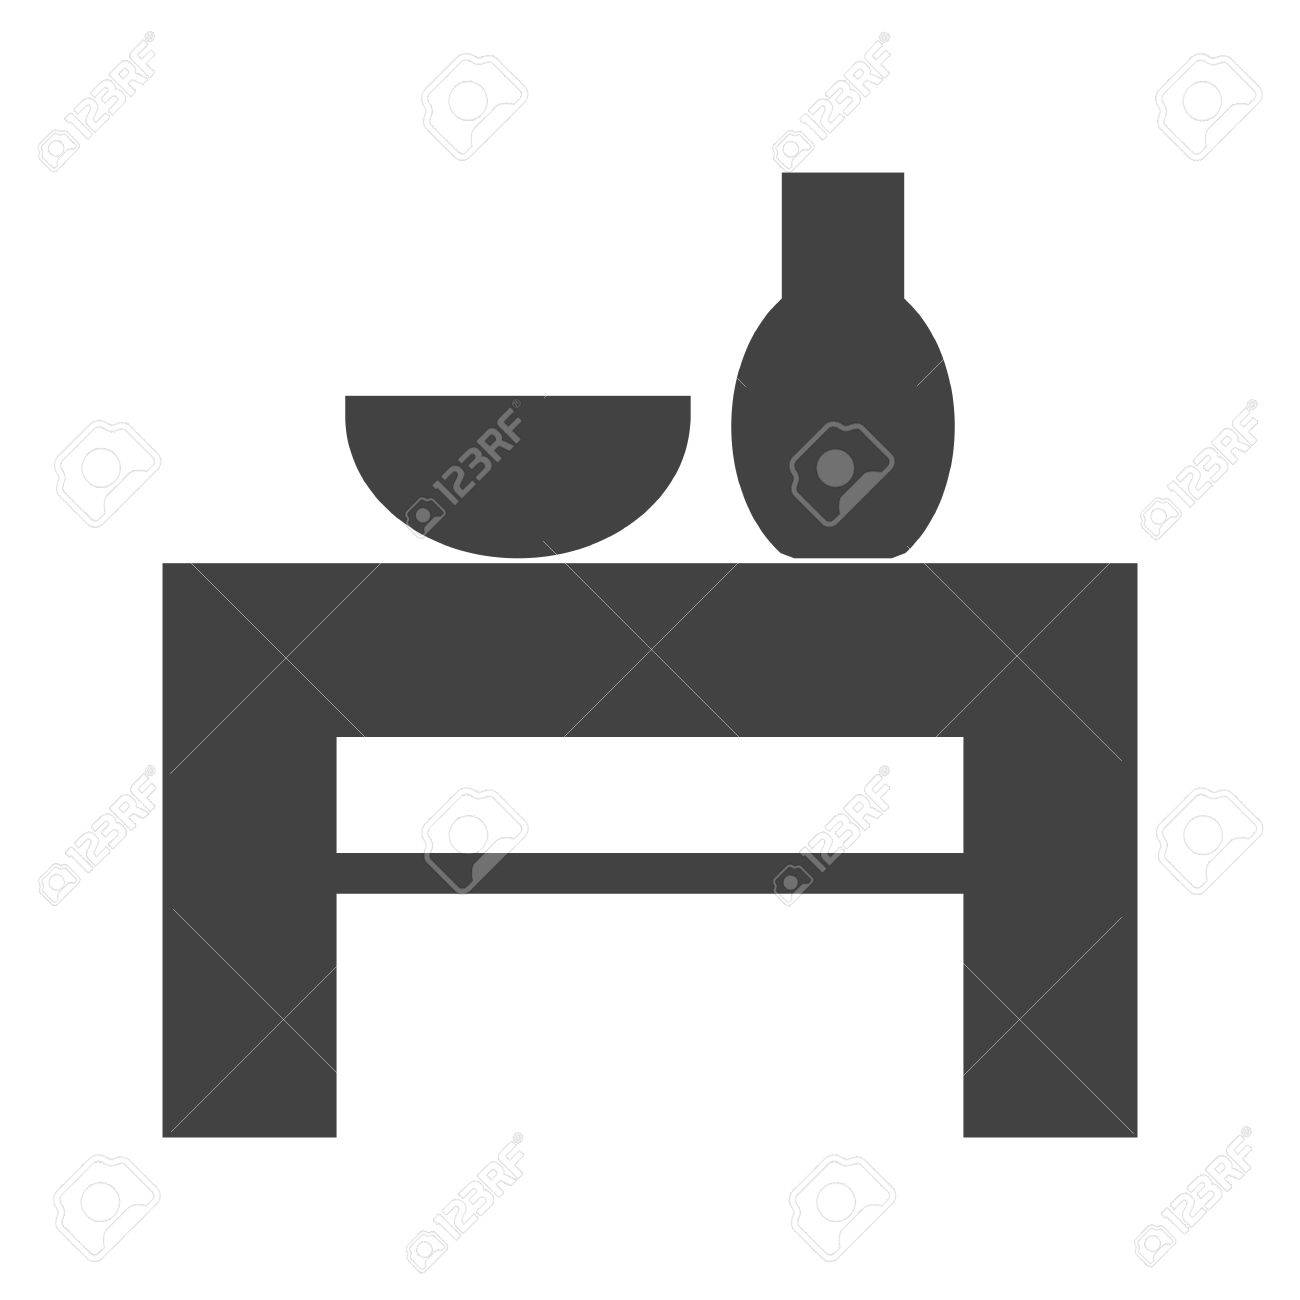 Table wedding decoration icon vector imagen also be used table wedding decoration icon vector imagen also be used for furniture design junglespirit Image collections